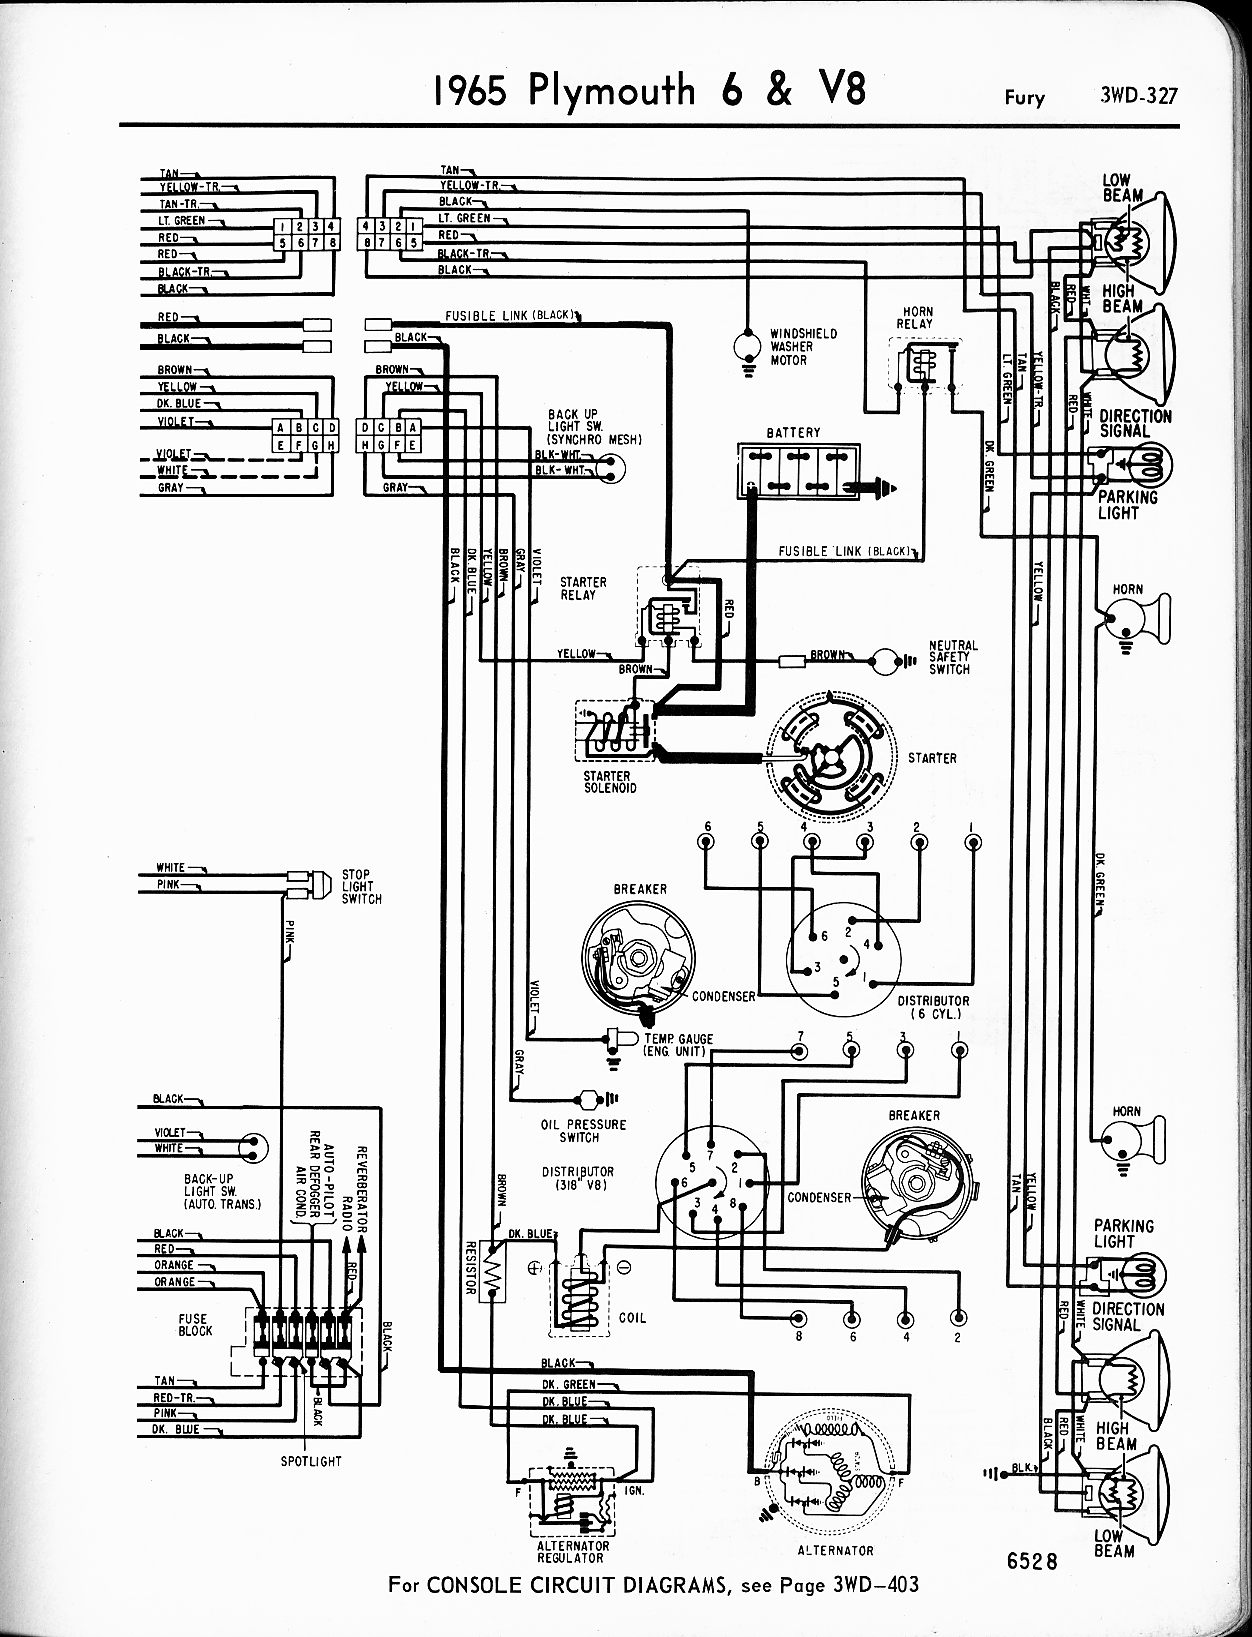 65 chevy truck fuse box online wiring diagram 1998 Chevy Fuse Box Diagram diagram together with wiring diagram besides 1965 chevy pickup truck1965 gmc wire diagram fuse box wiring